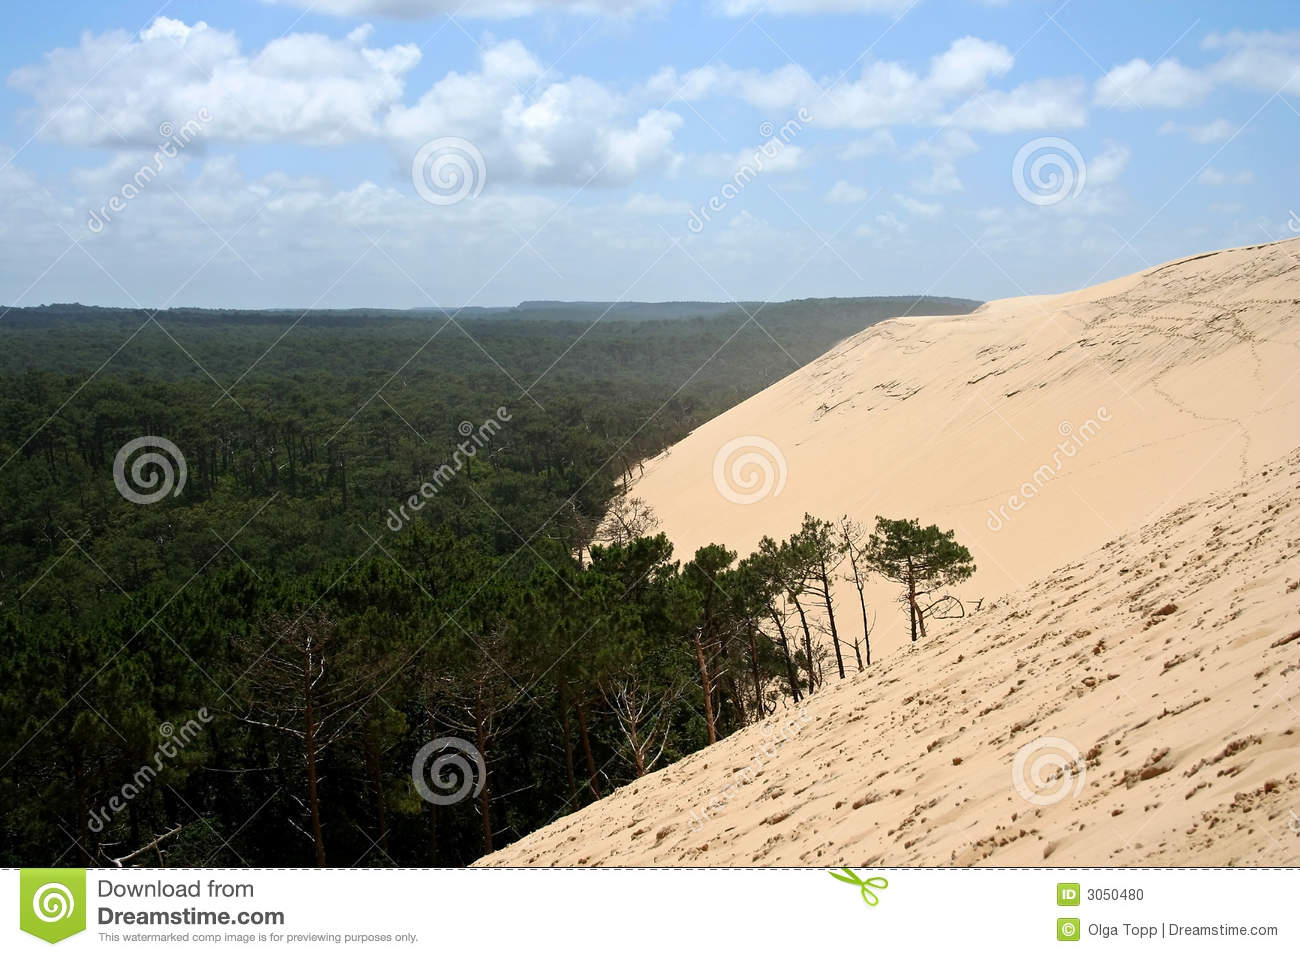 dune du pyla in arcachon france stock photo image of disaster dune 3050480. Black Bedroom Furniture Sets. Home Design Ideas